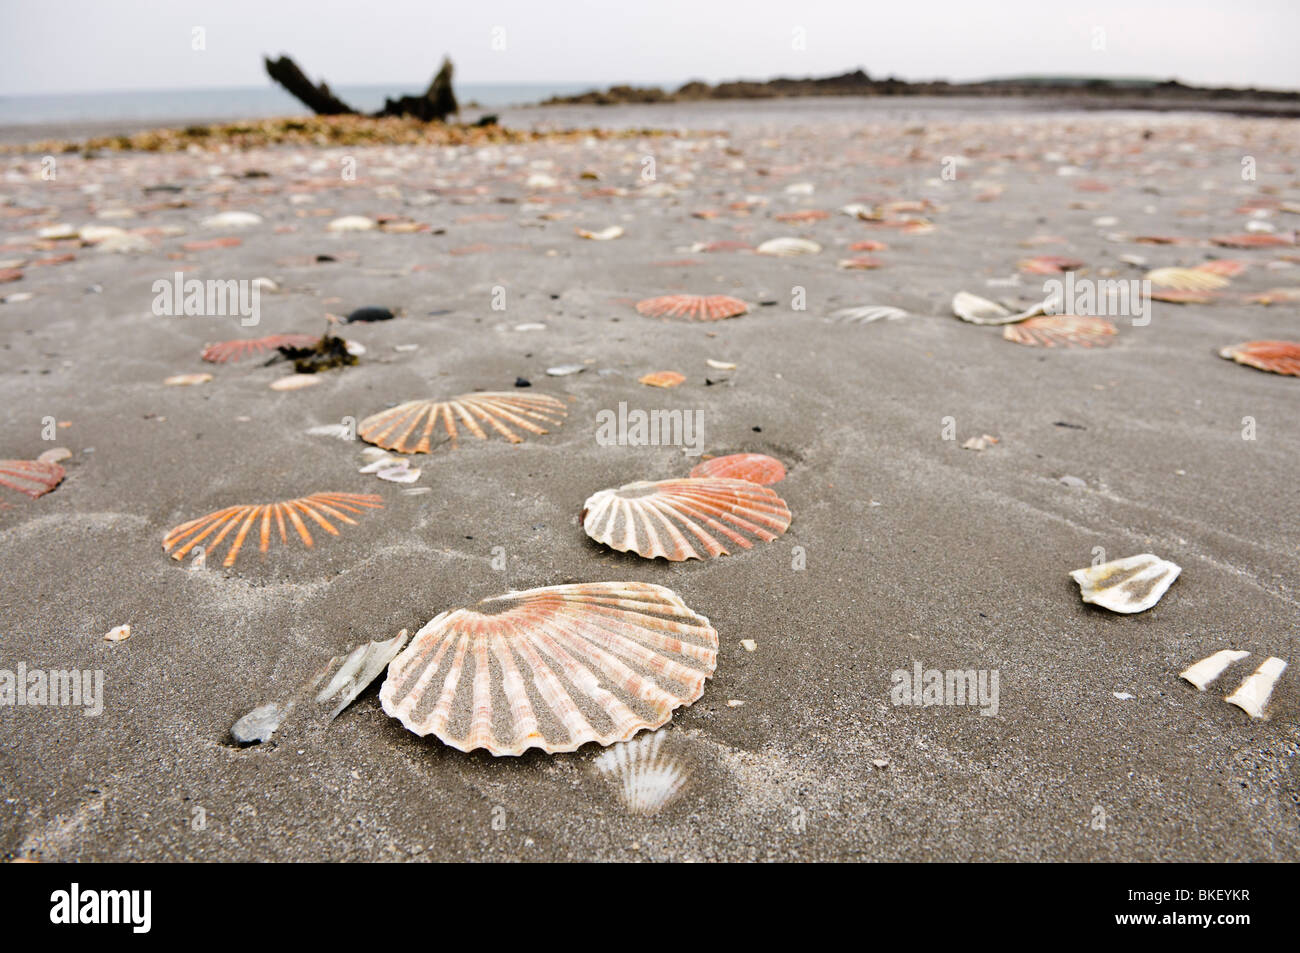 Scallop shells lying on a sandy beach, shipwreck in background - Stock Image